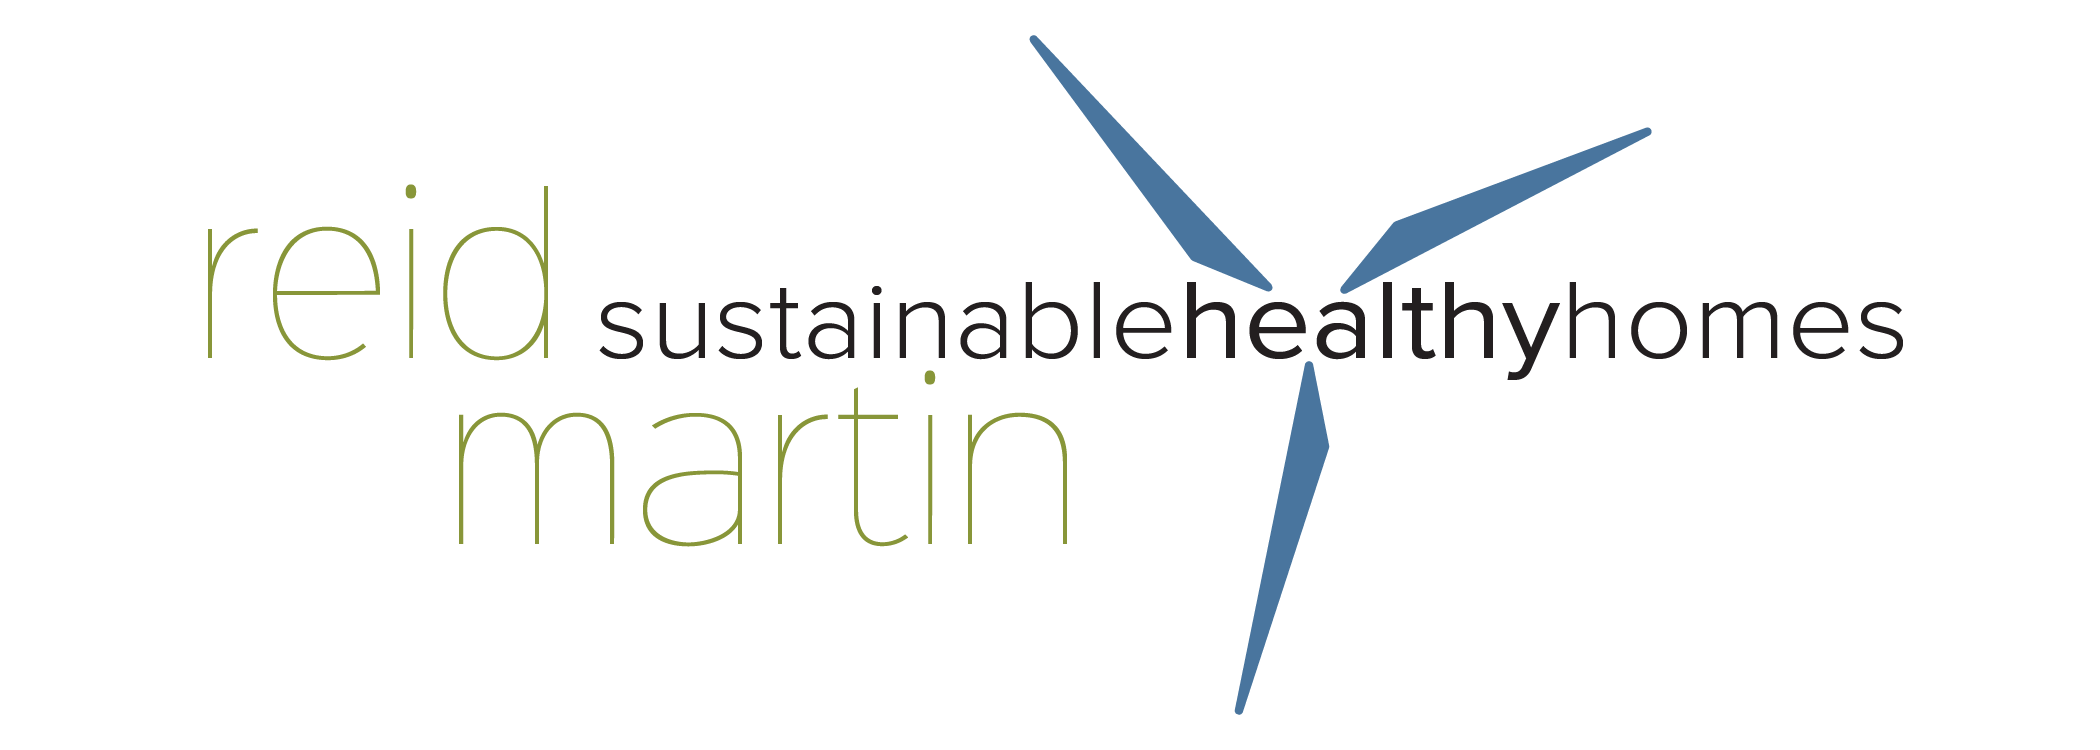 Final Logo Design for Sustainable Healthy Homes, created by: Brightly & Co.